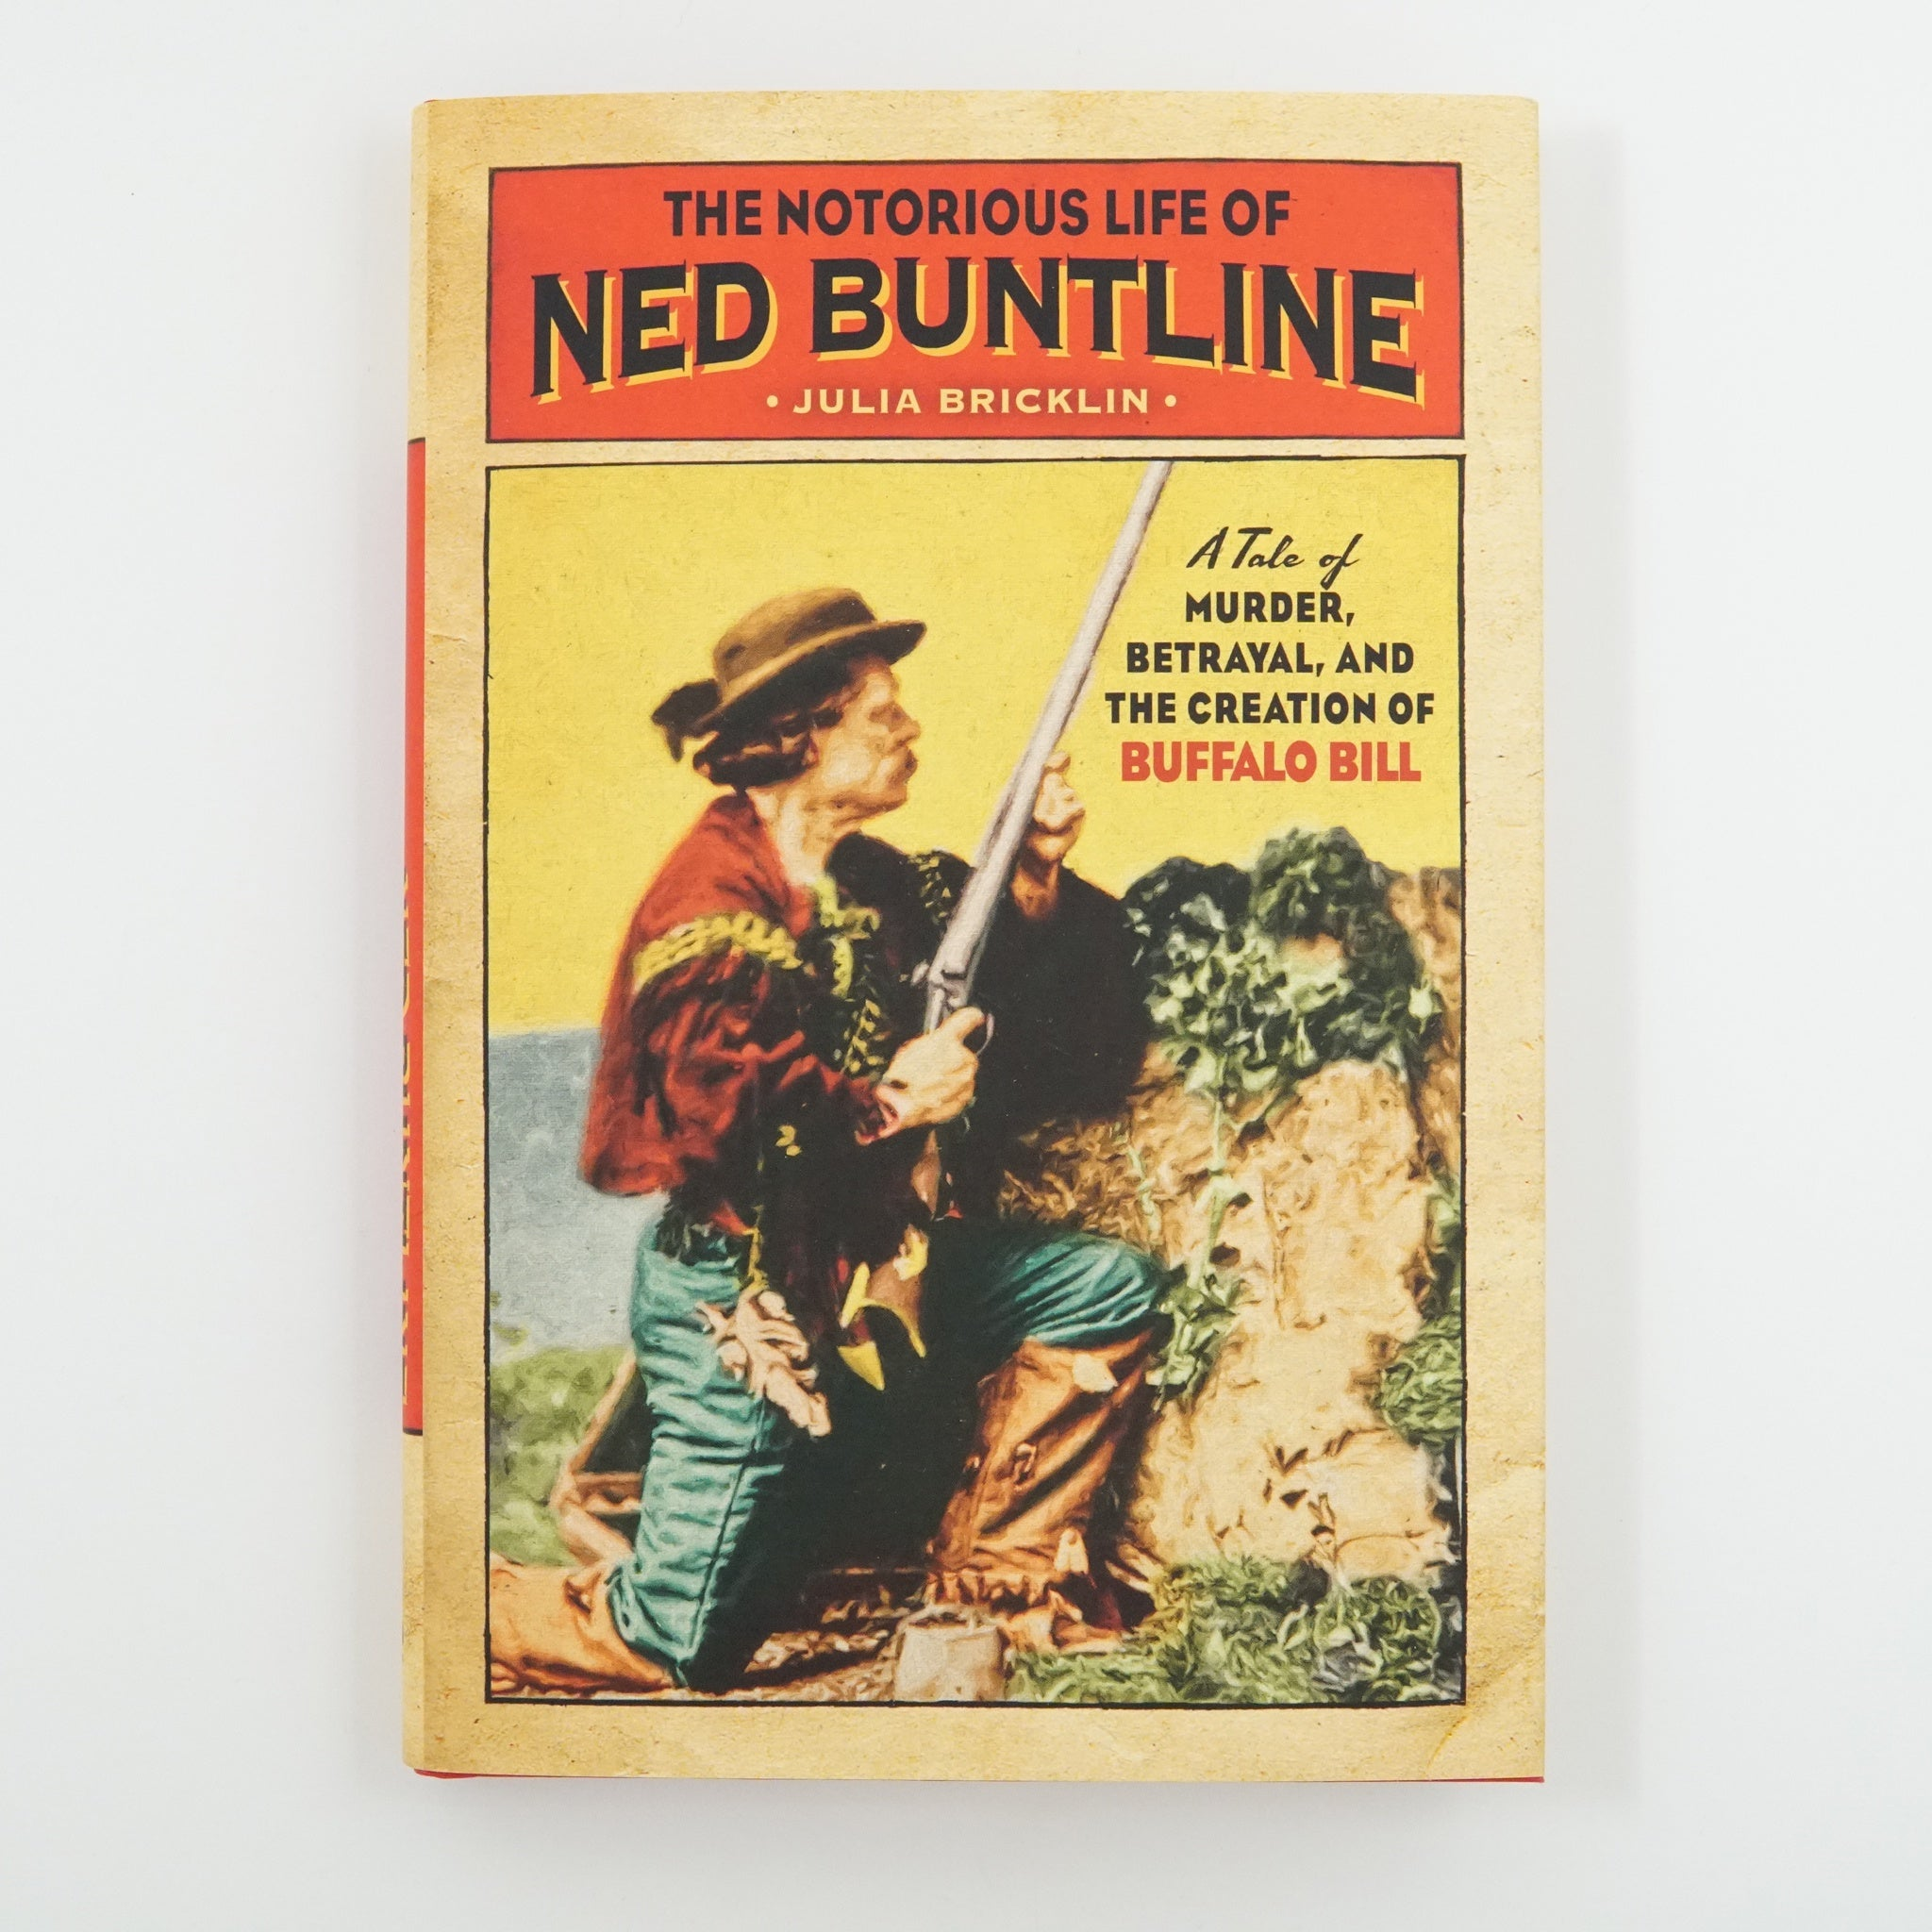 The Notorious Life of Ned Buntline by Julia Bricklin